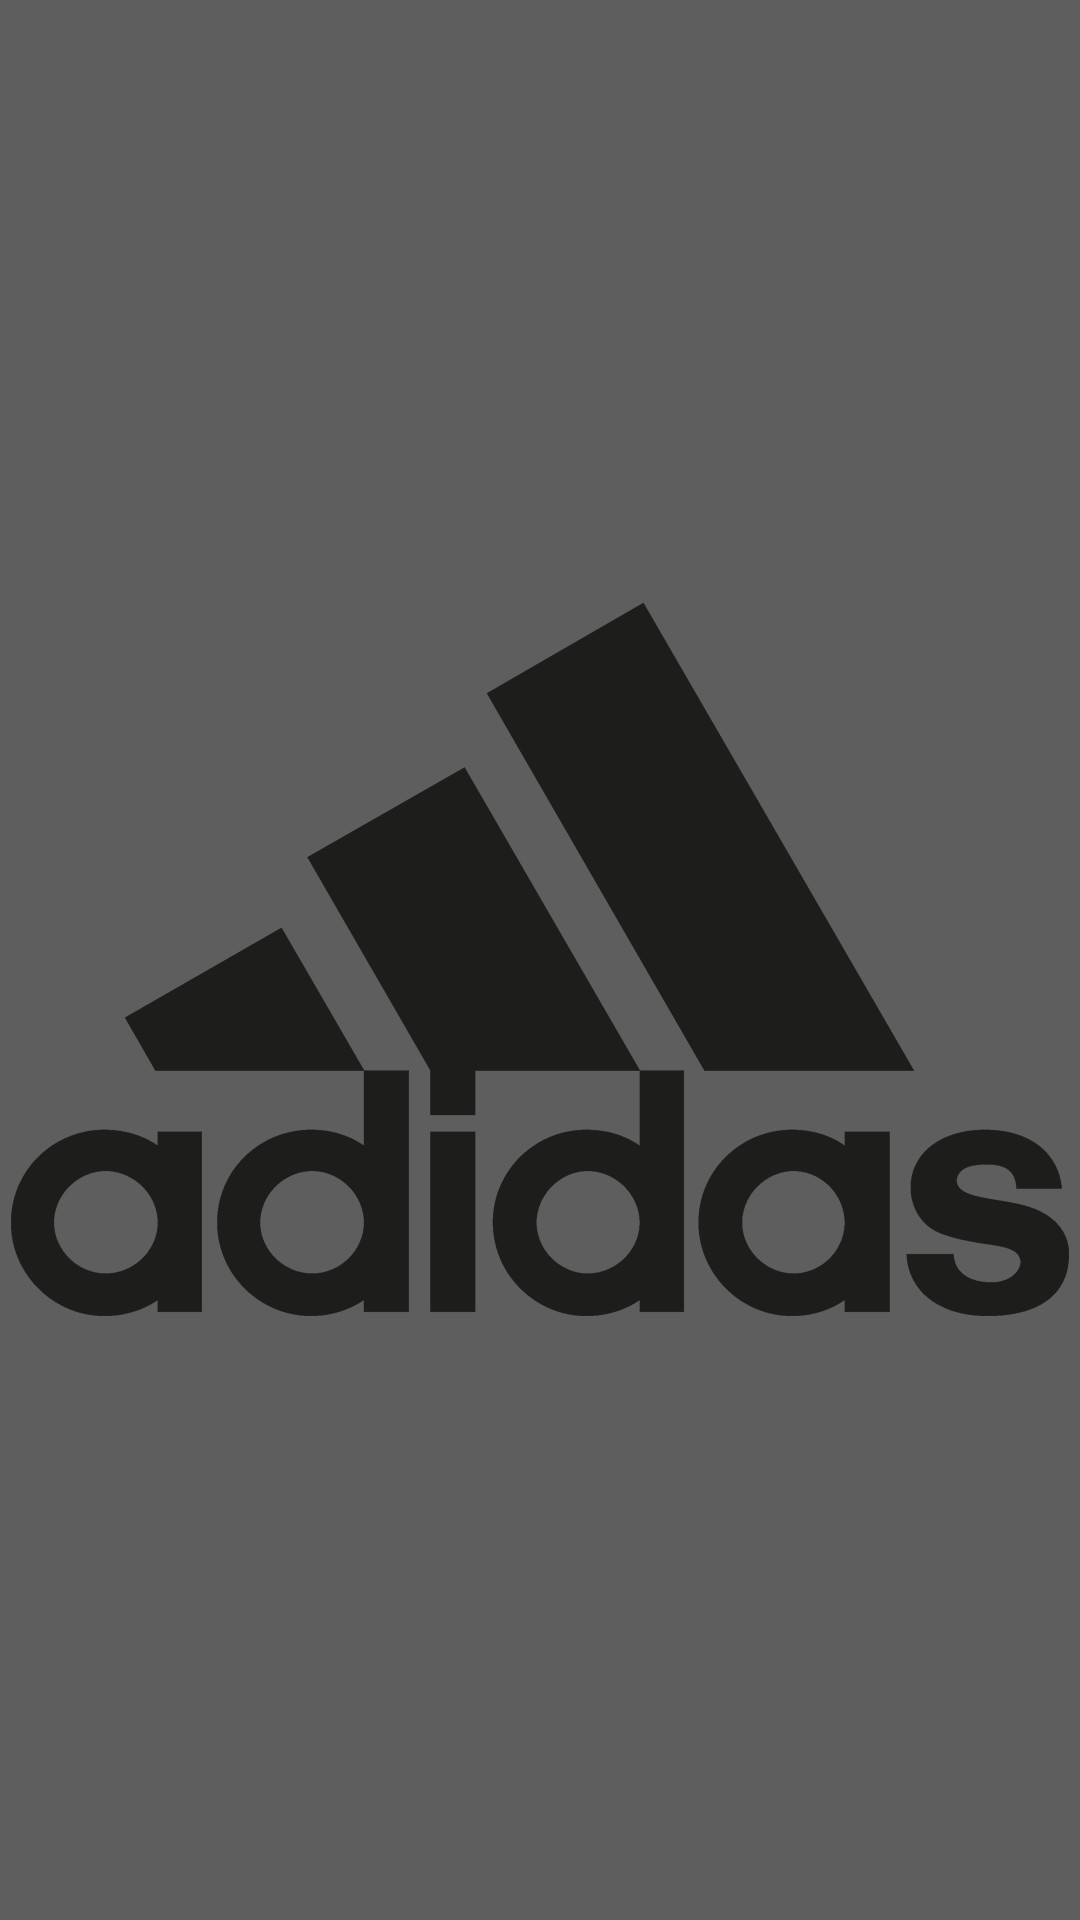 Download Free Adidas Iphone Background.